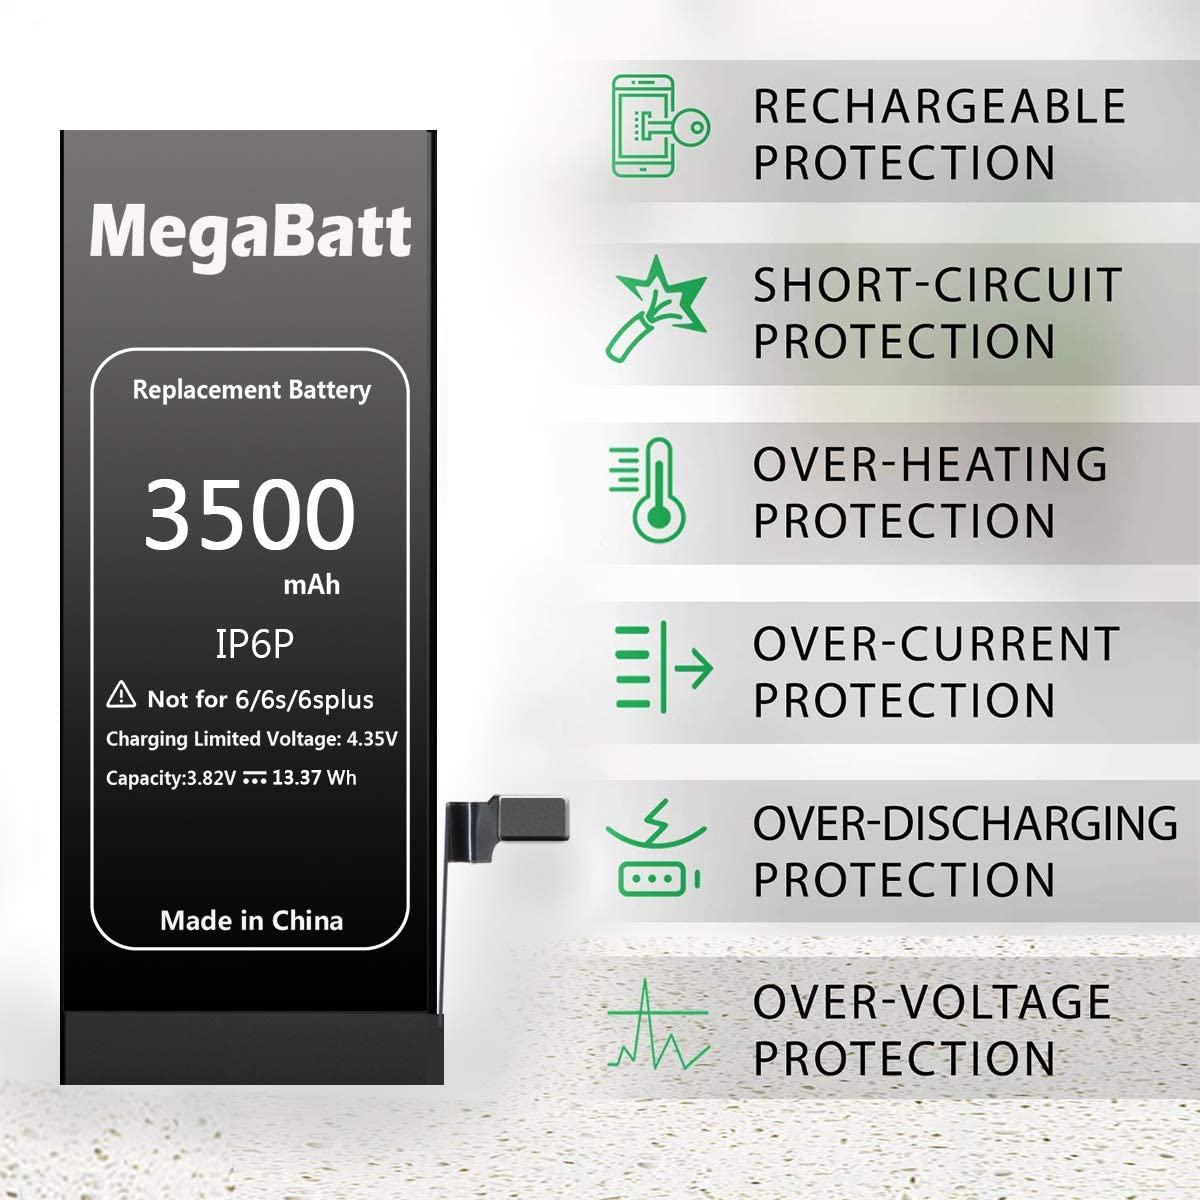 MegaBatt Battery for iPhone 6 Plus 3500mAh High Capacity Replacement Battery New 0 Cycle with Complete Repair Tool Kits and Instruction 1-Year Warranty